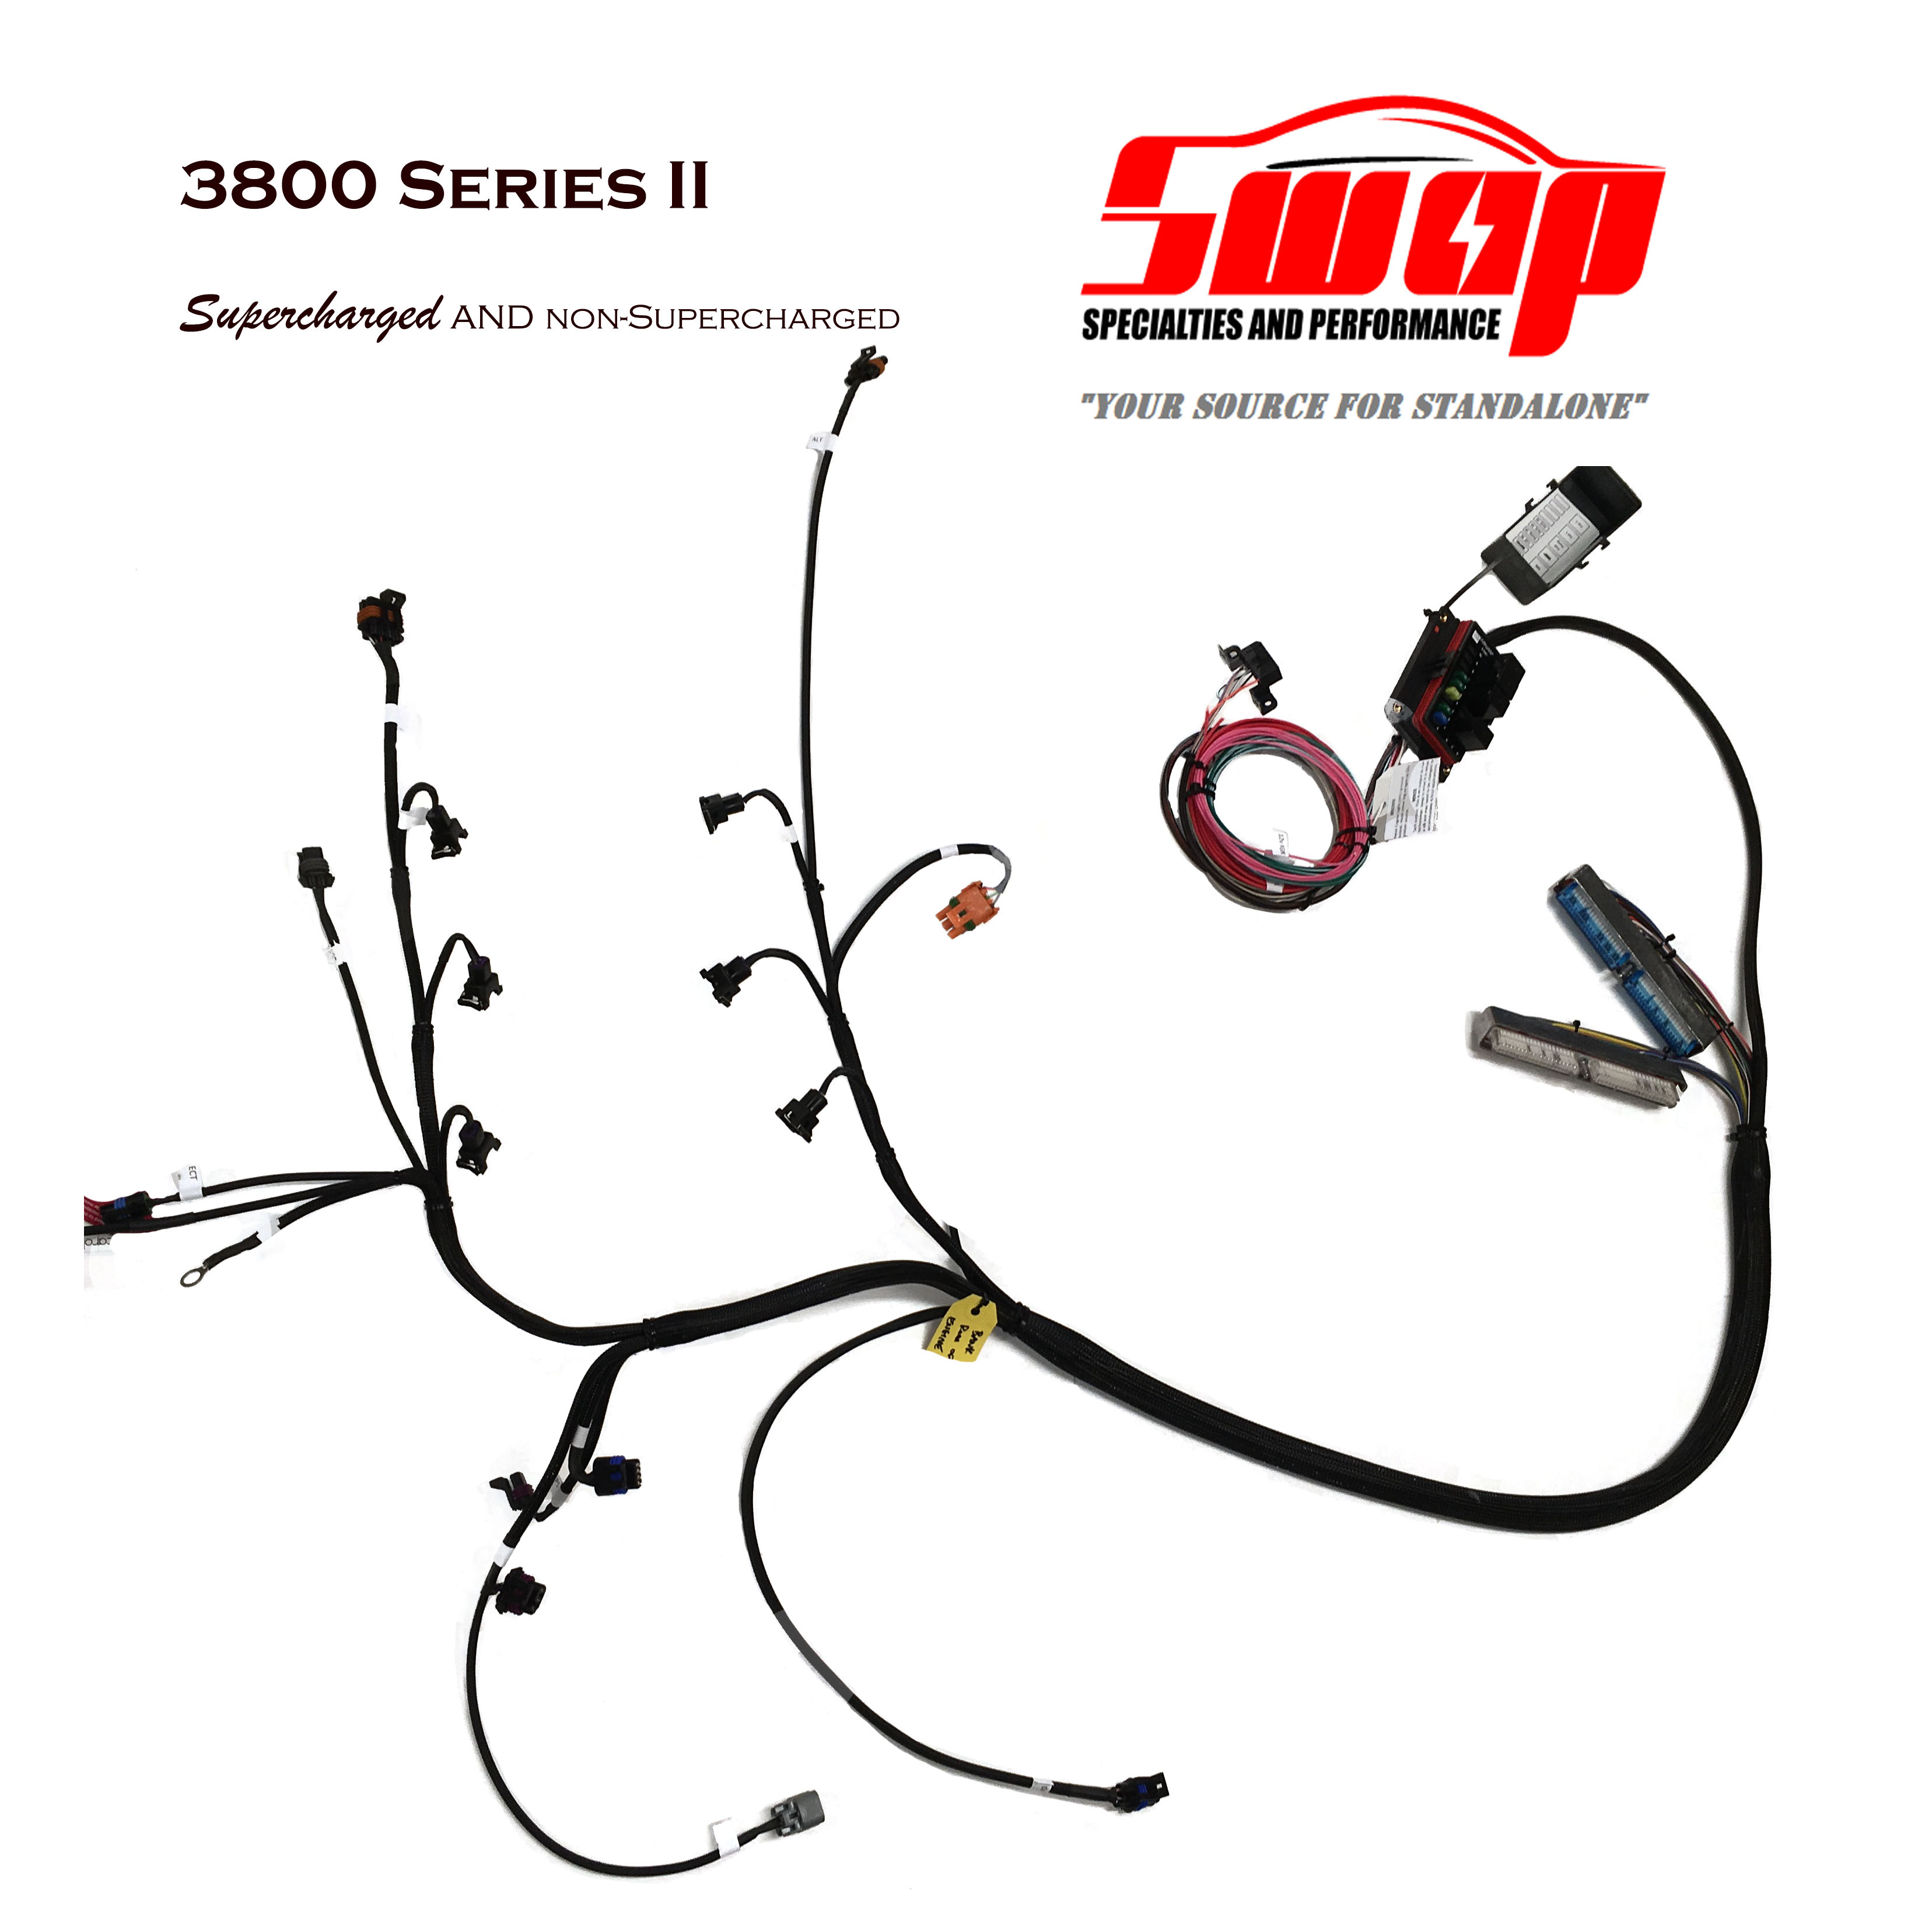 custom wiring harness for s10 3800 standalone harness     swap specialties  3800 standalone harness     swap specialties